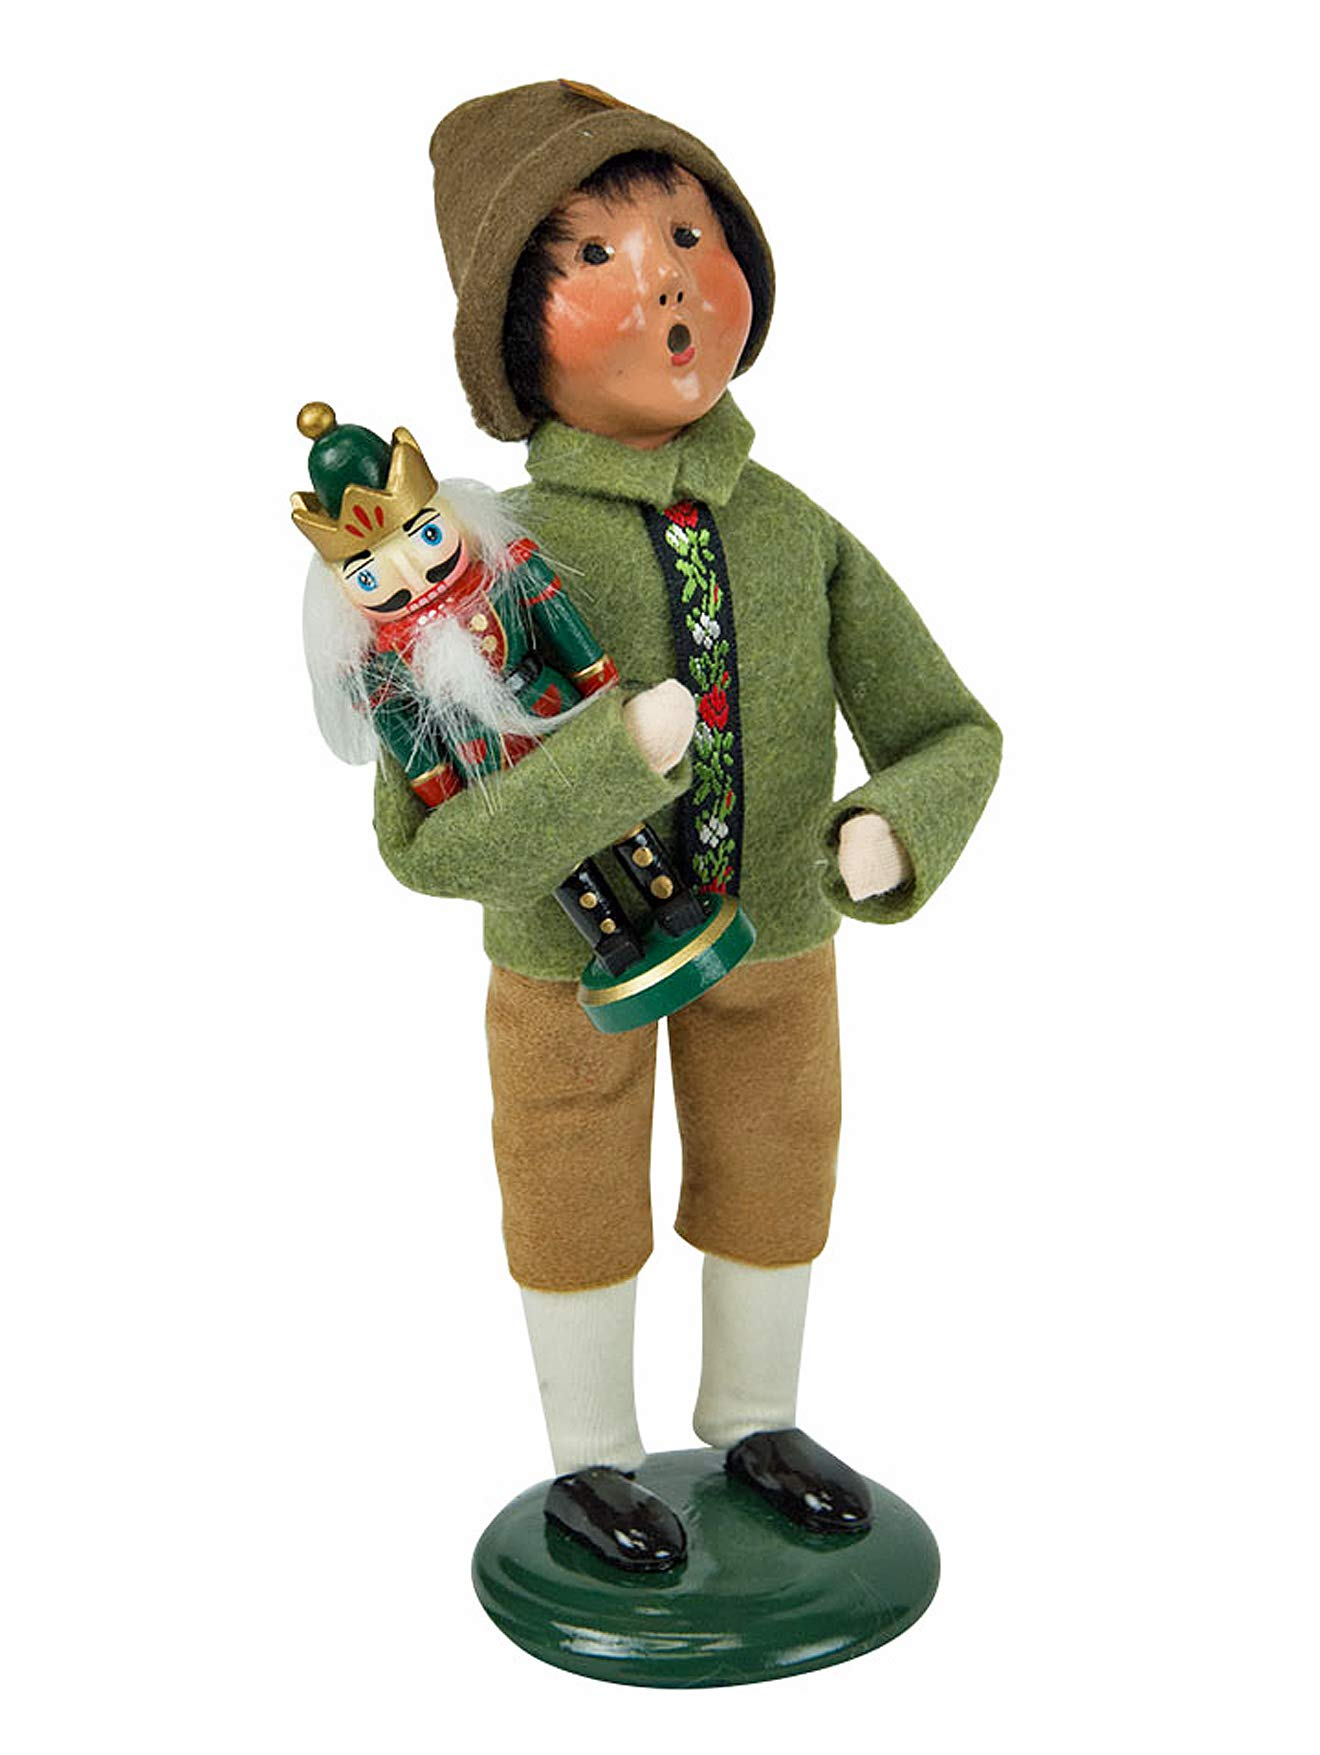 Holiday Figurines - Byers Choice - BOY with Nutcracker - New for Christmas 2018